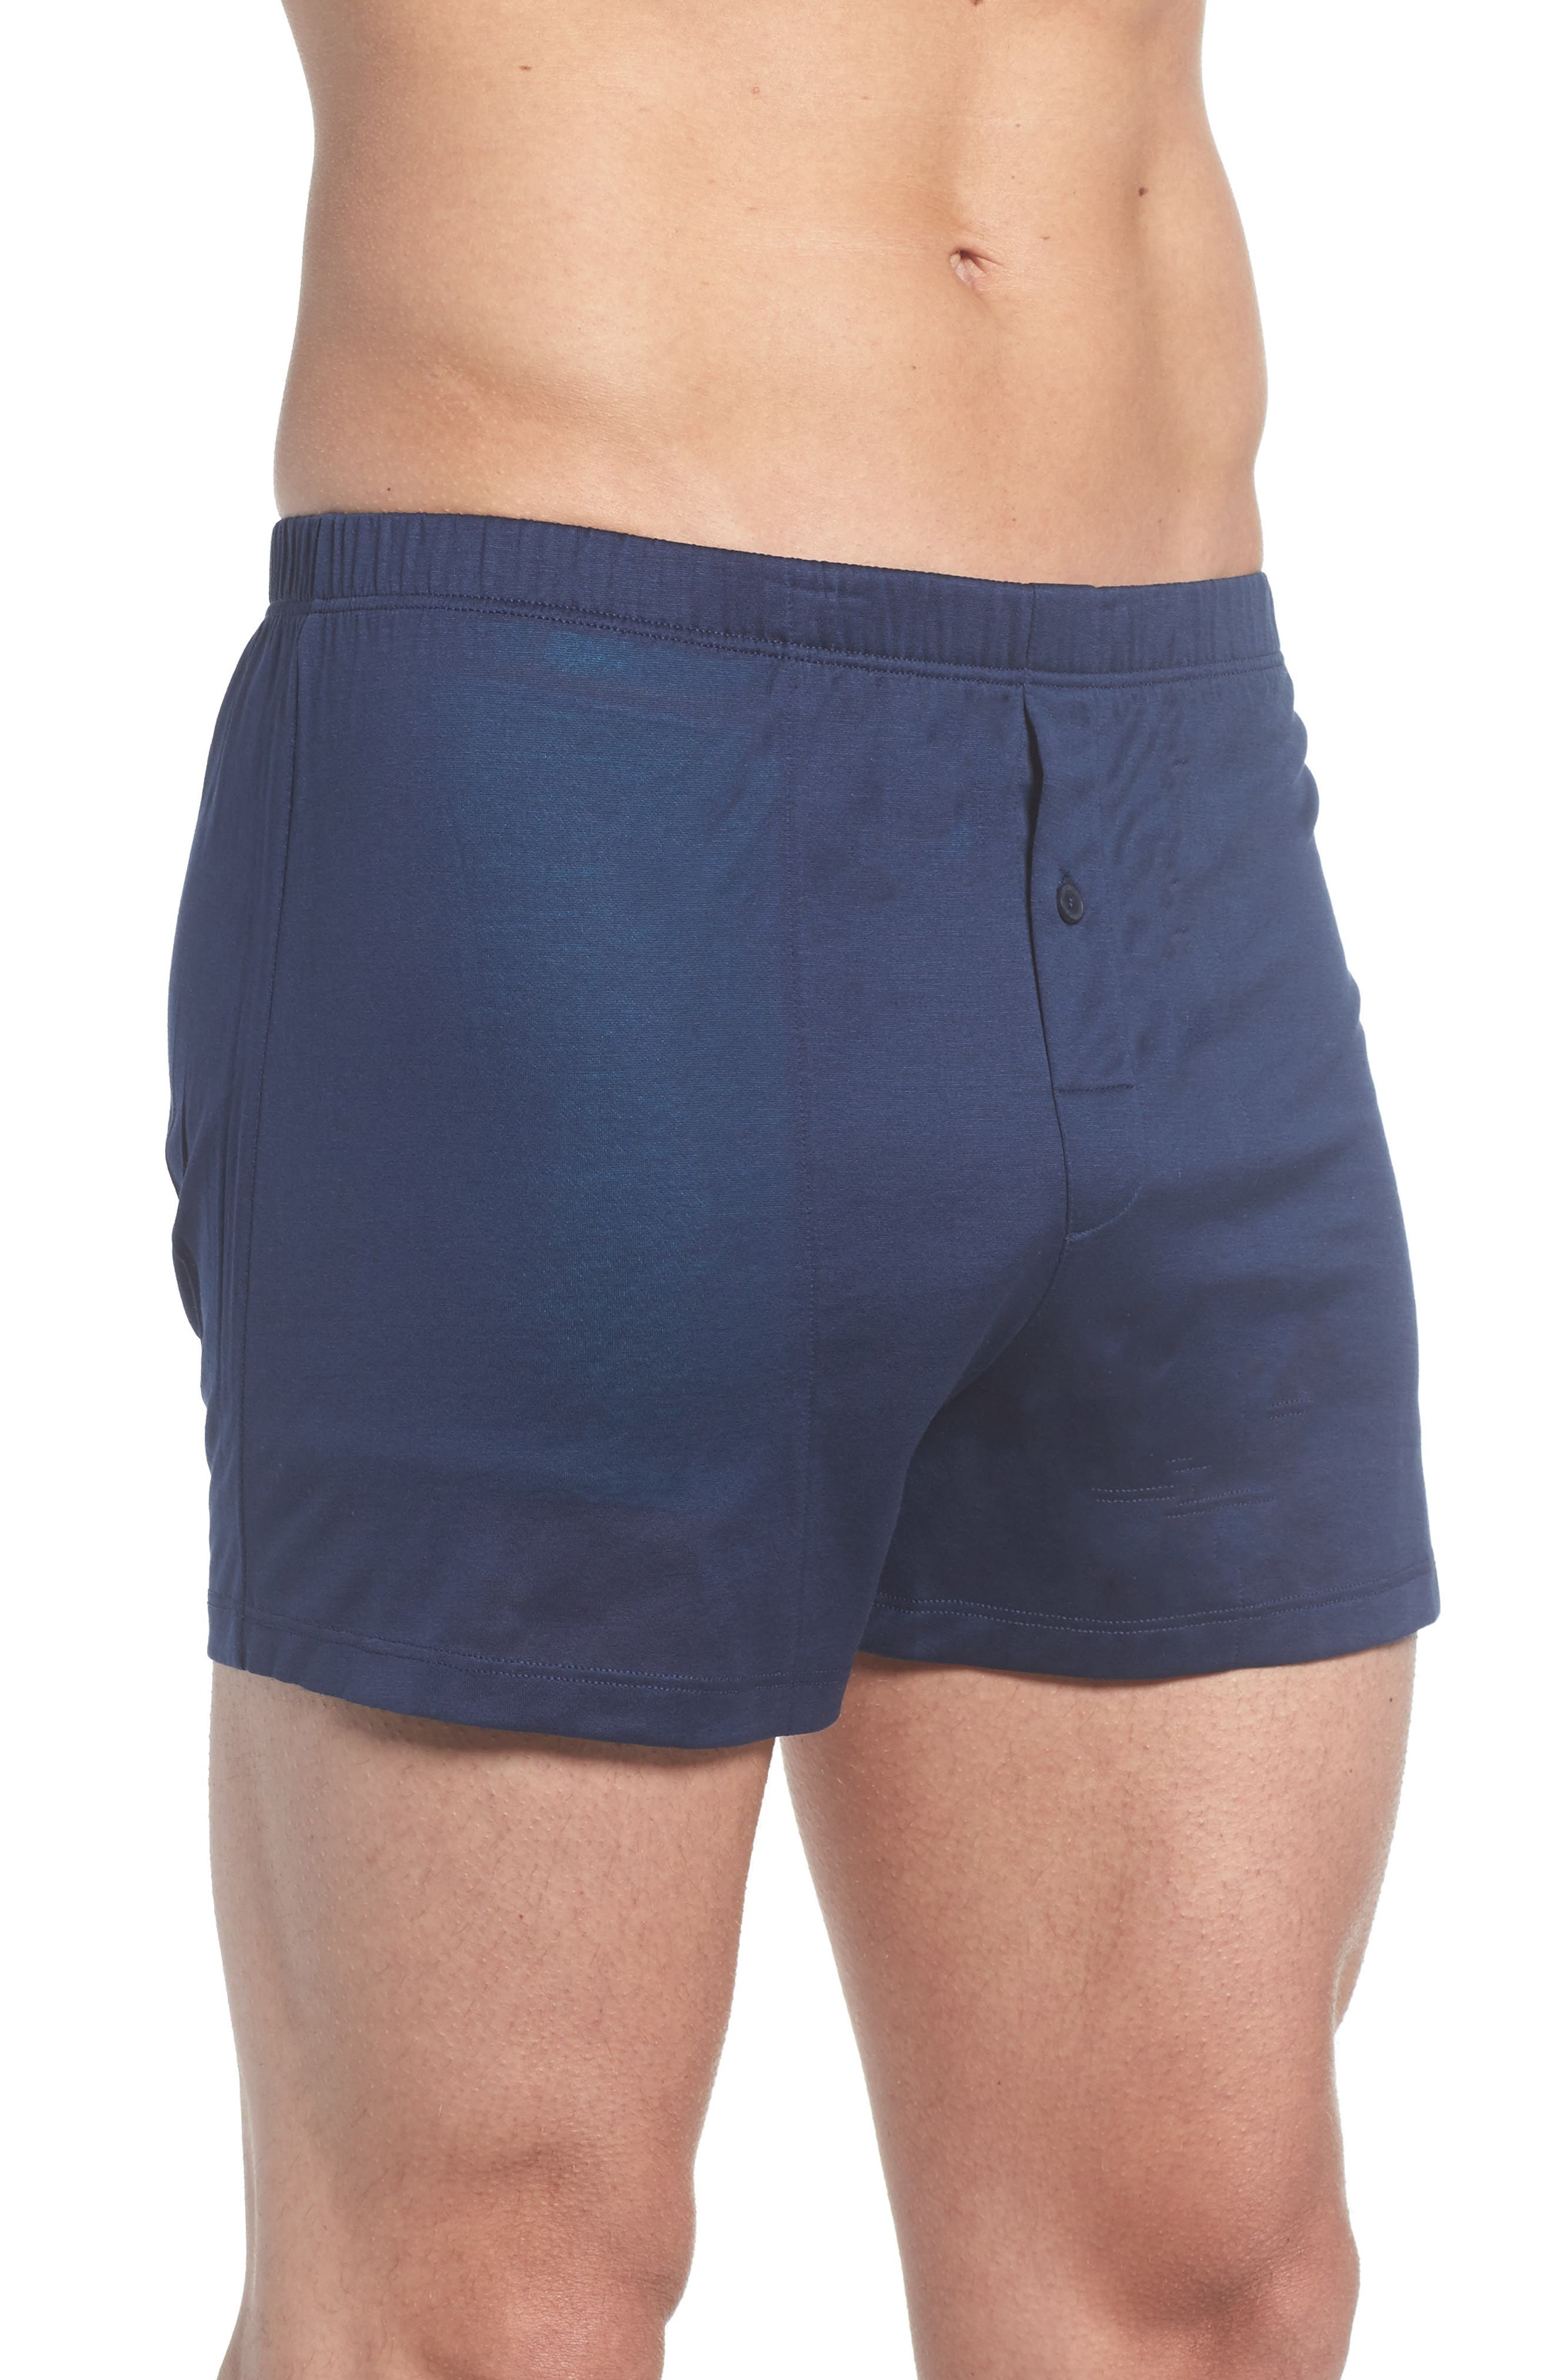 Cotton Sporty Knit Boxers,                             Alternate thumbnail 3, color,                             Midnight Navy